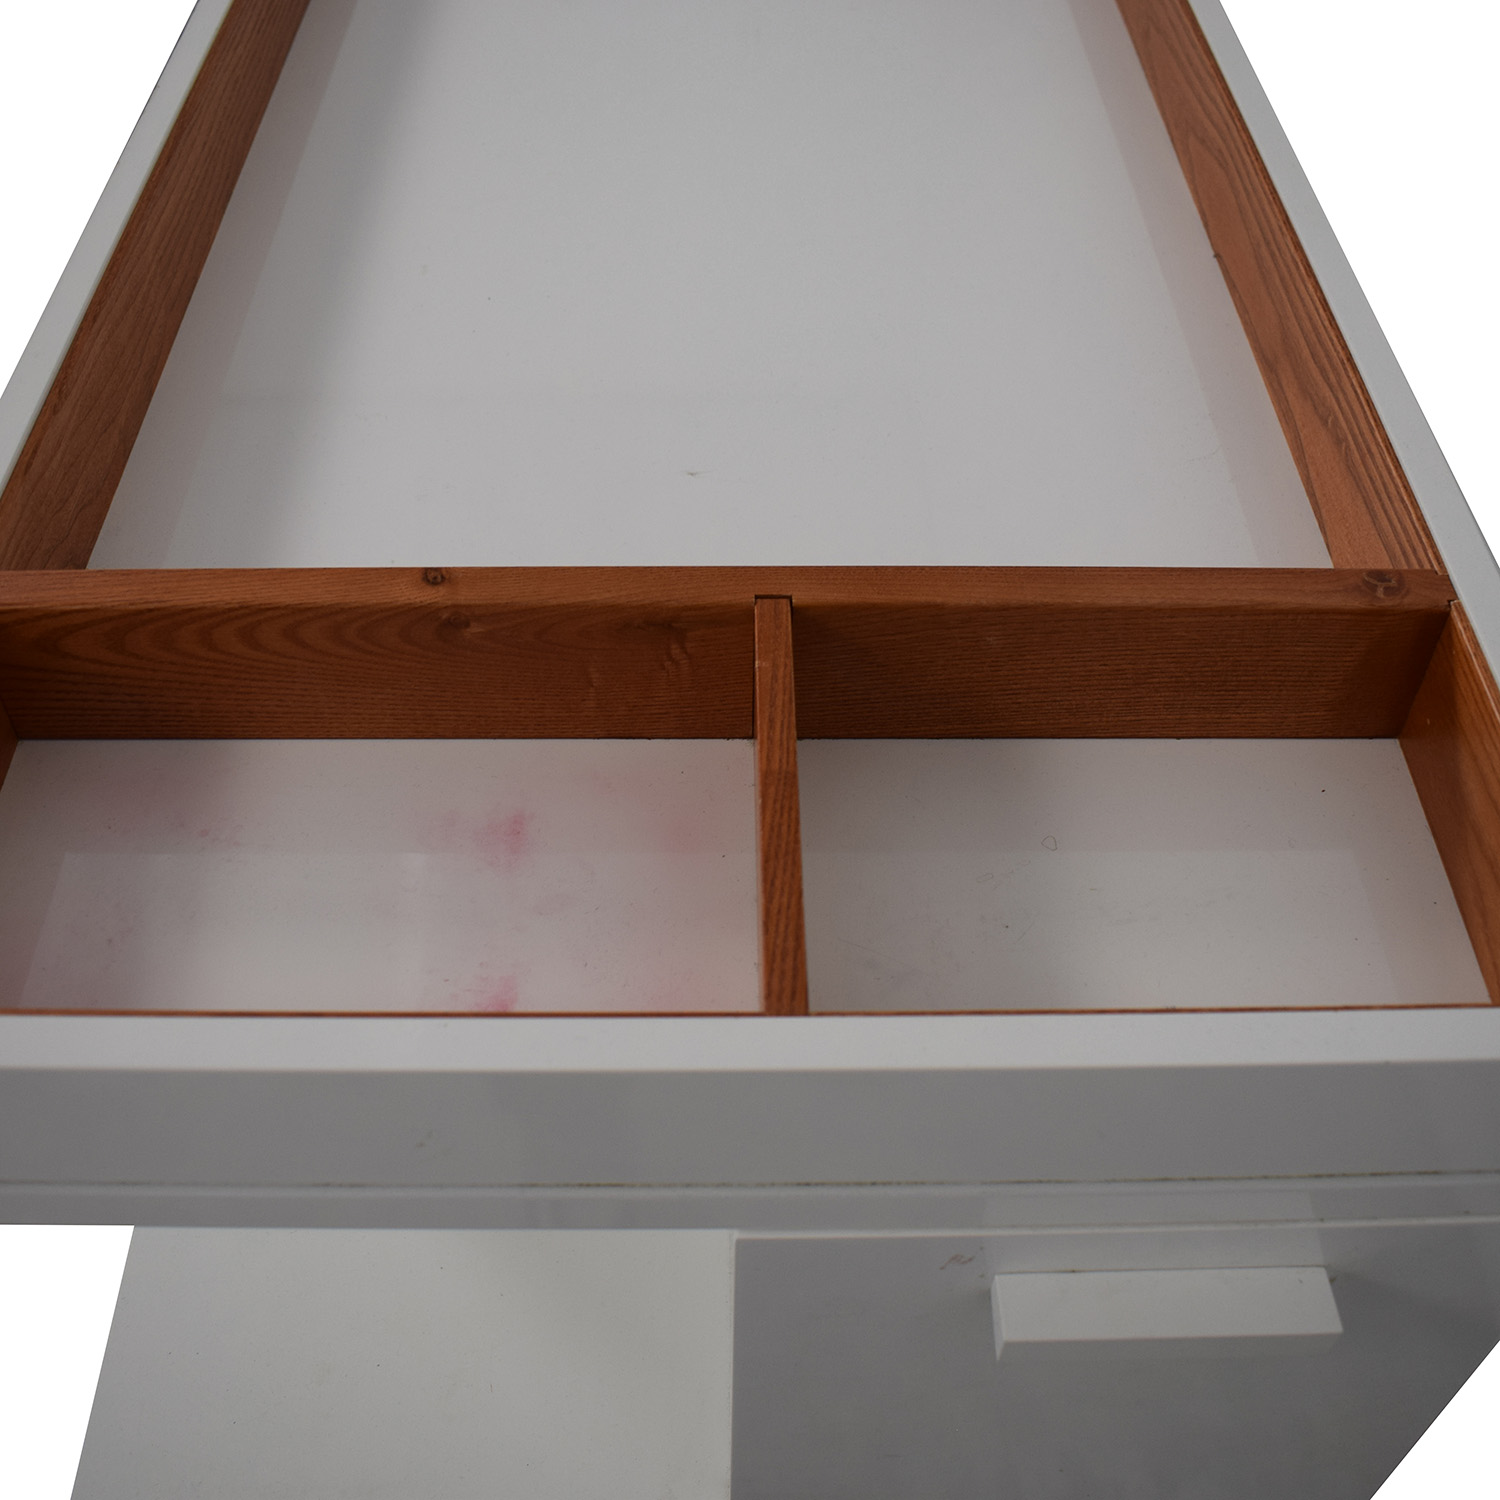 David Netto Changing Table